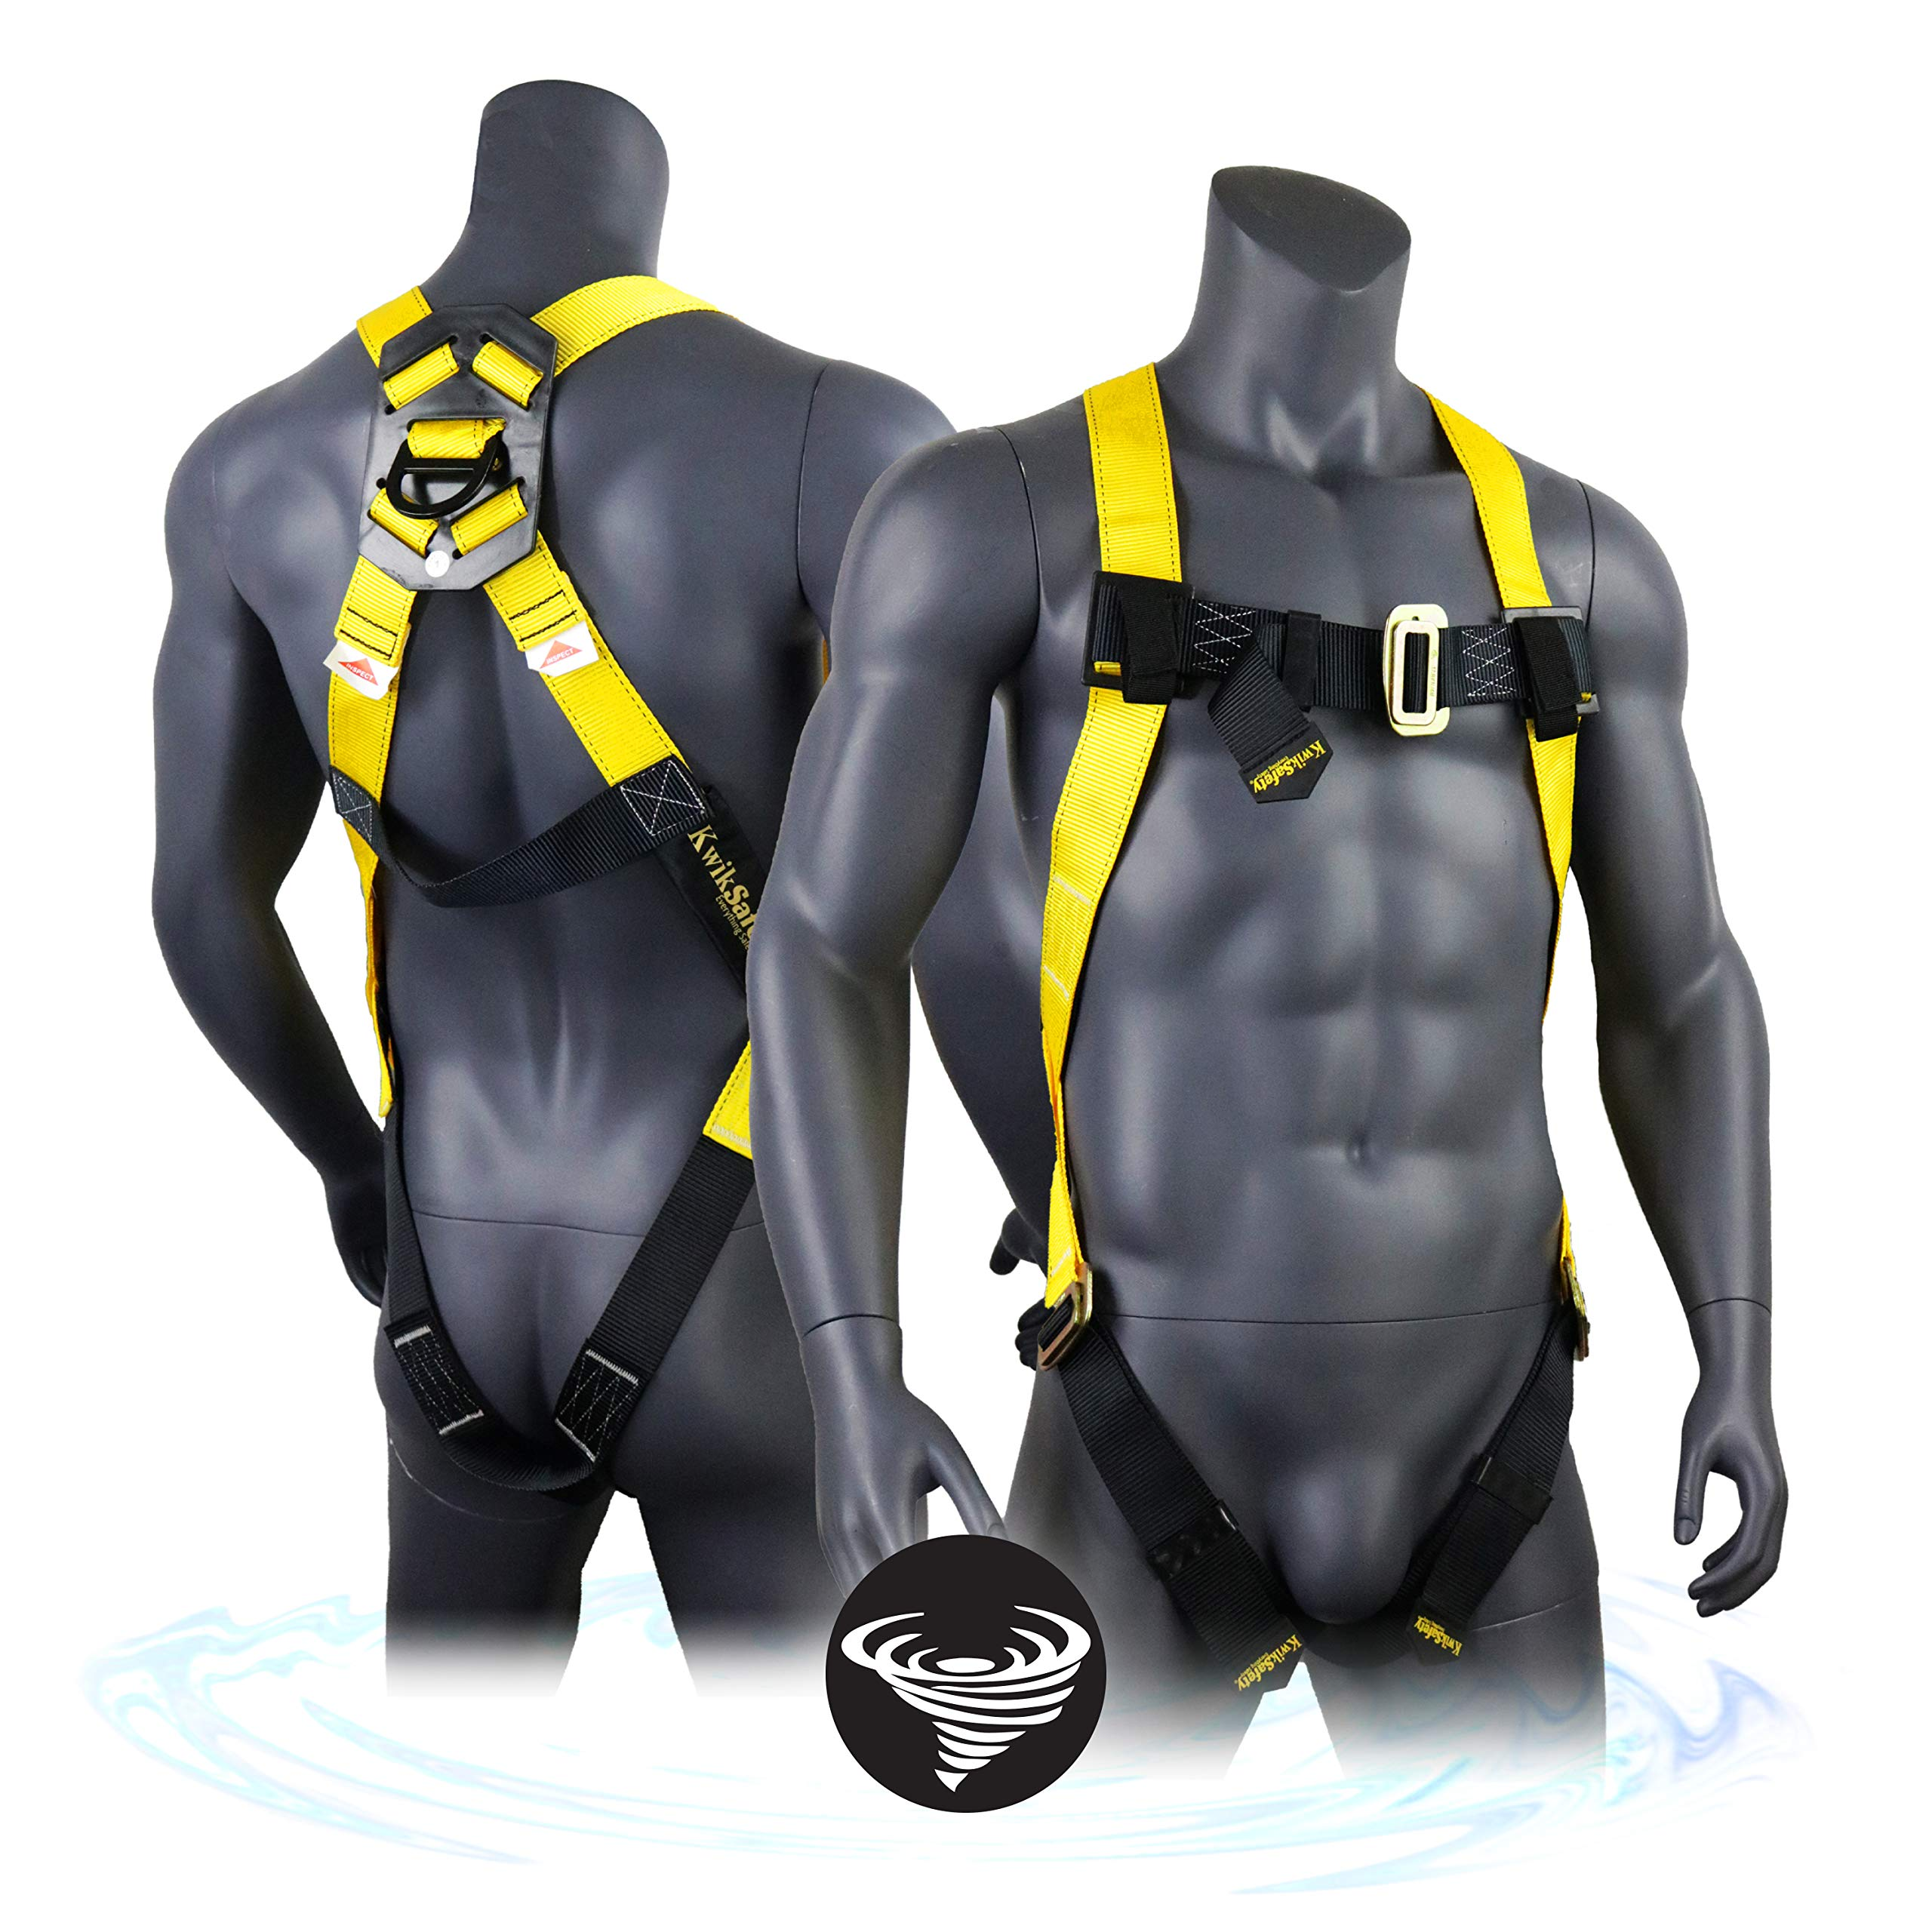 KwikSafety (Charlotte, NC) TORNADO 1D Fall Protection Full Body Safety Harness | OSHA ANSI Industrial Roofing Tool Personal Protection Equipment | Construction Carpenter Scaffolding Contractor by KwikSafety